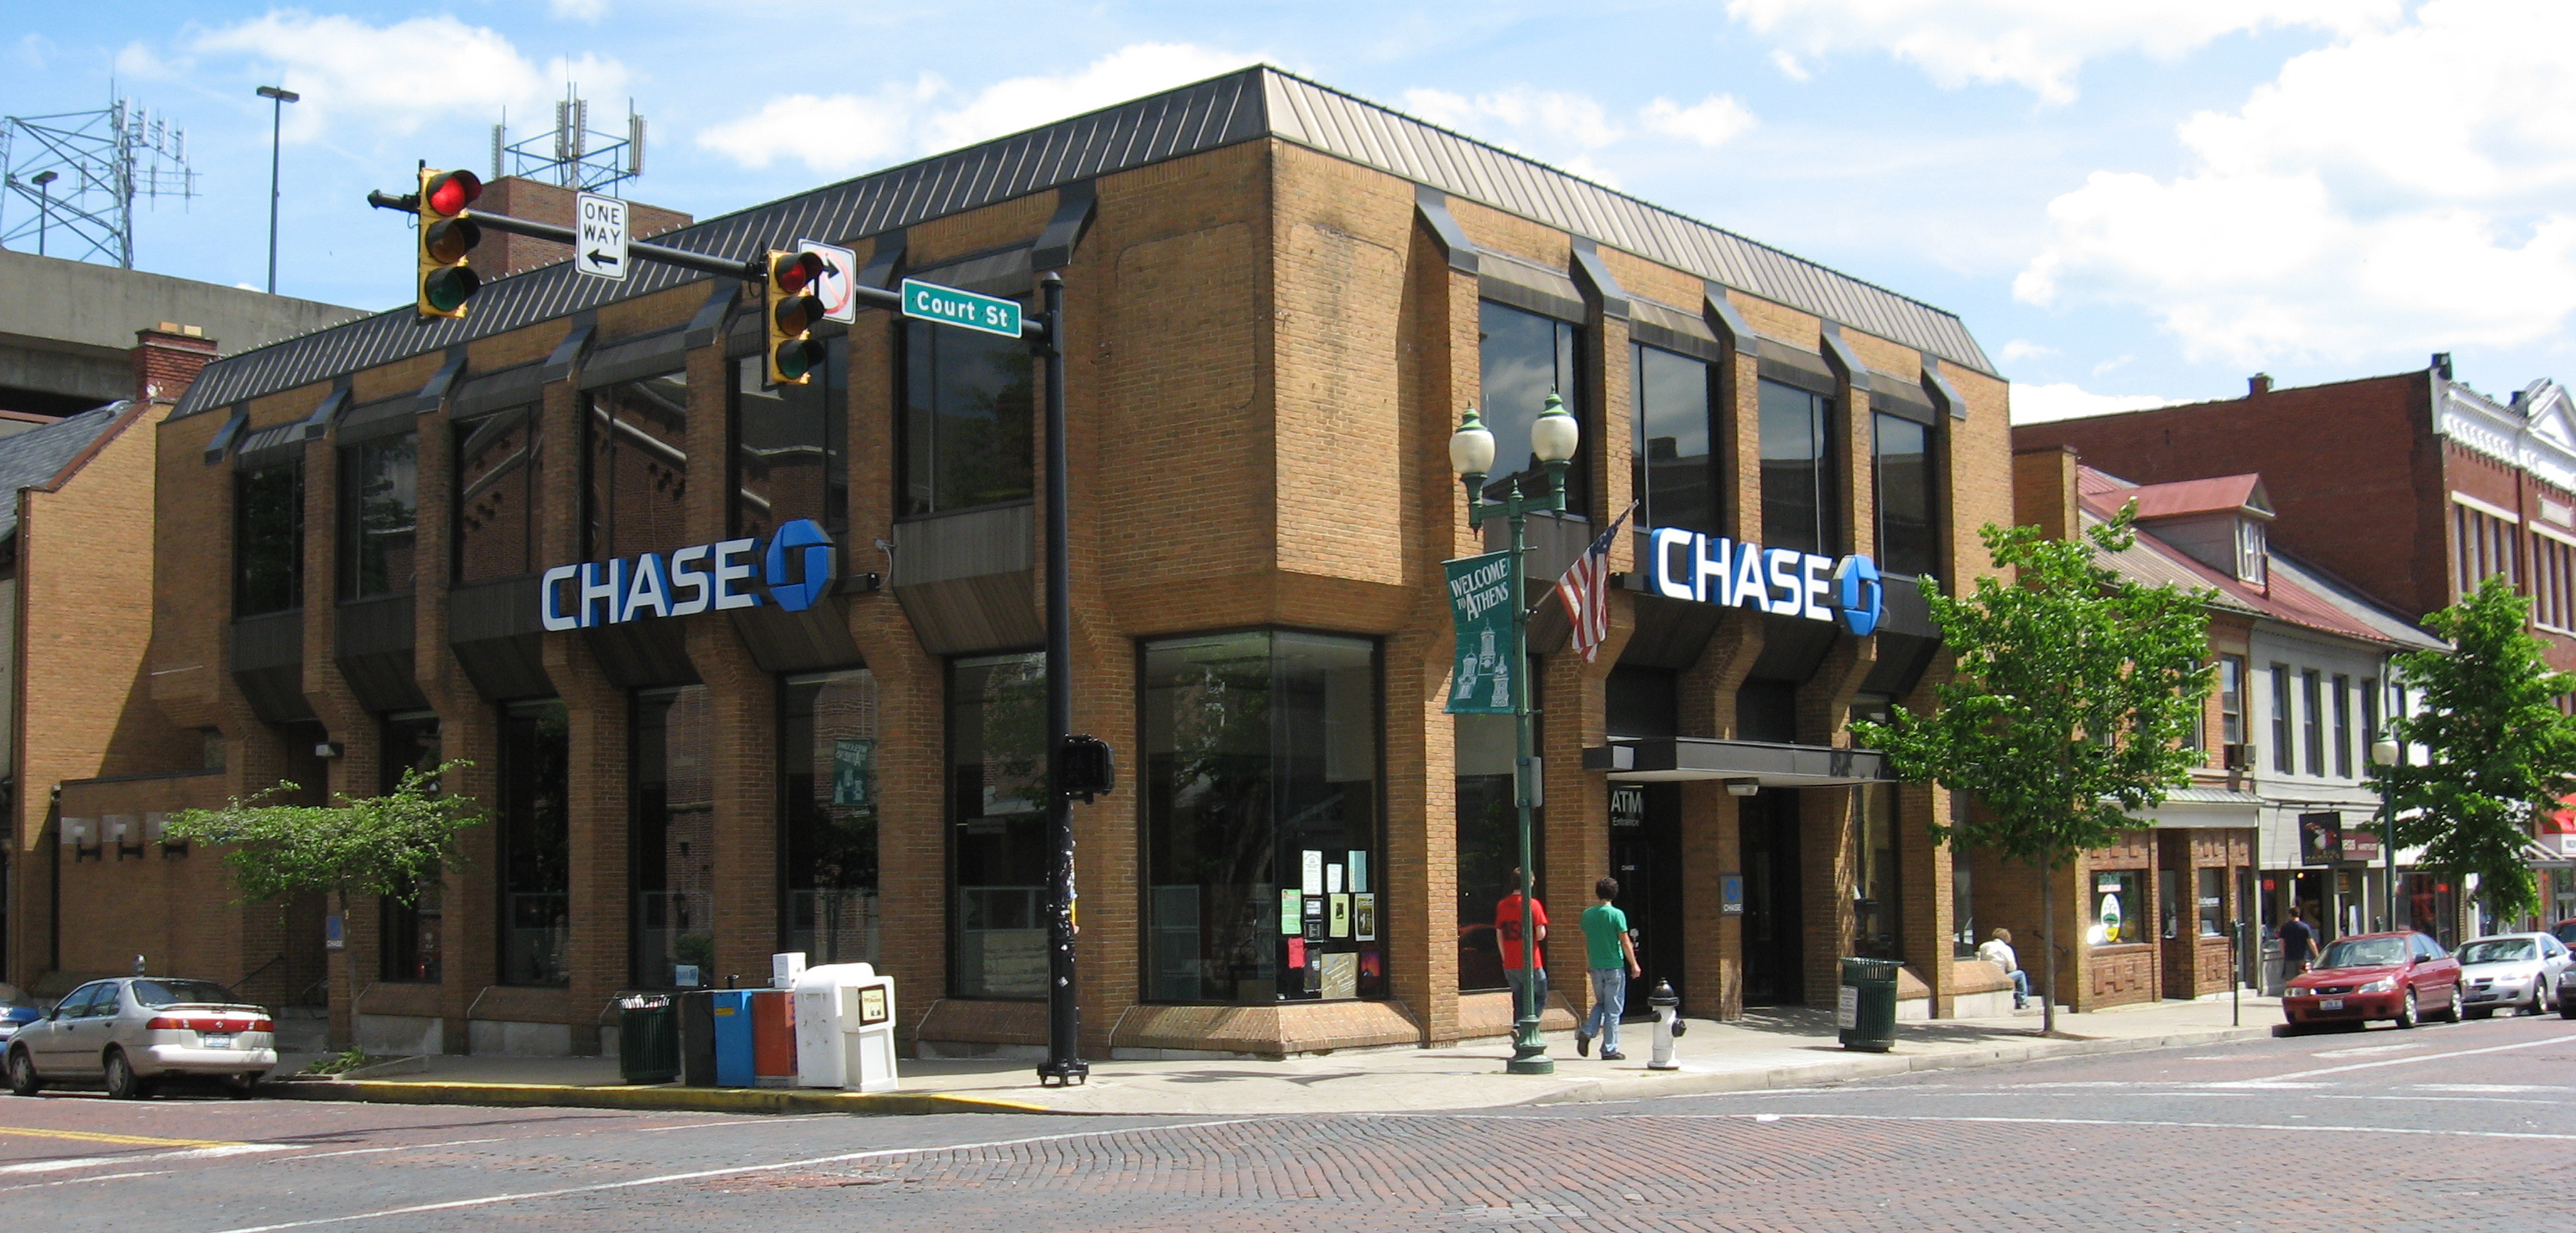 File:Chase Bank Athens OH USA.JPG - Wikimedia Commons